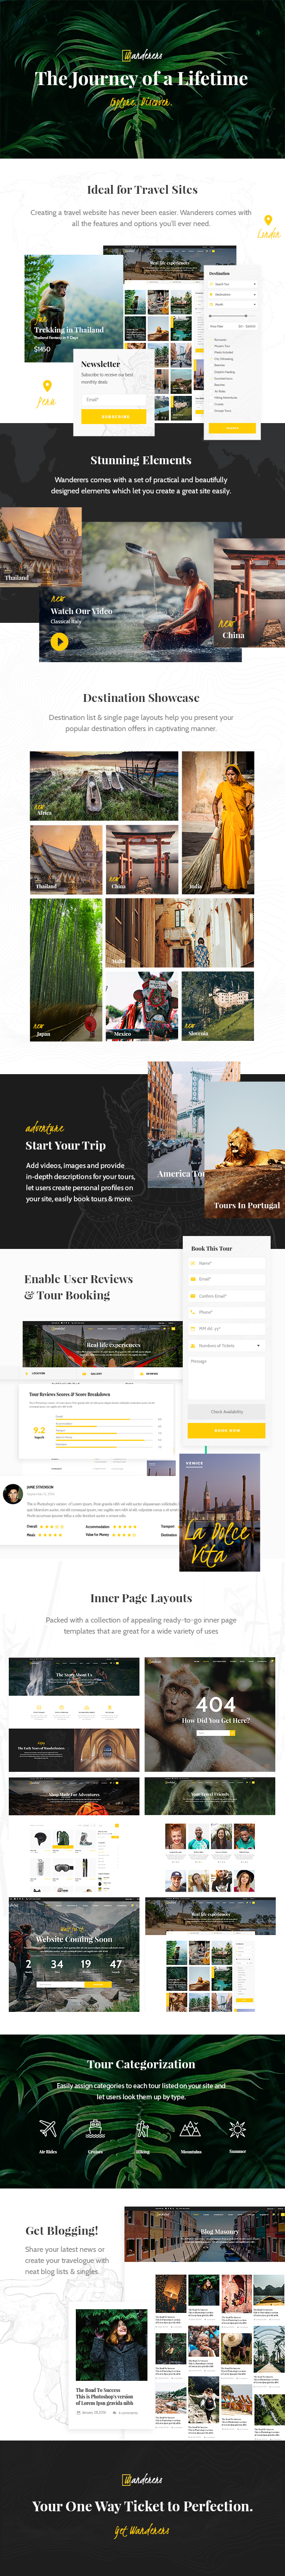 Wanderers - An Adventurous Theme for Travel and Tourism - 1